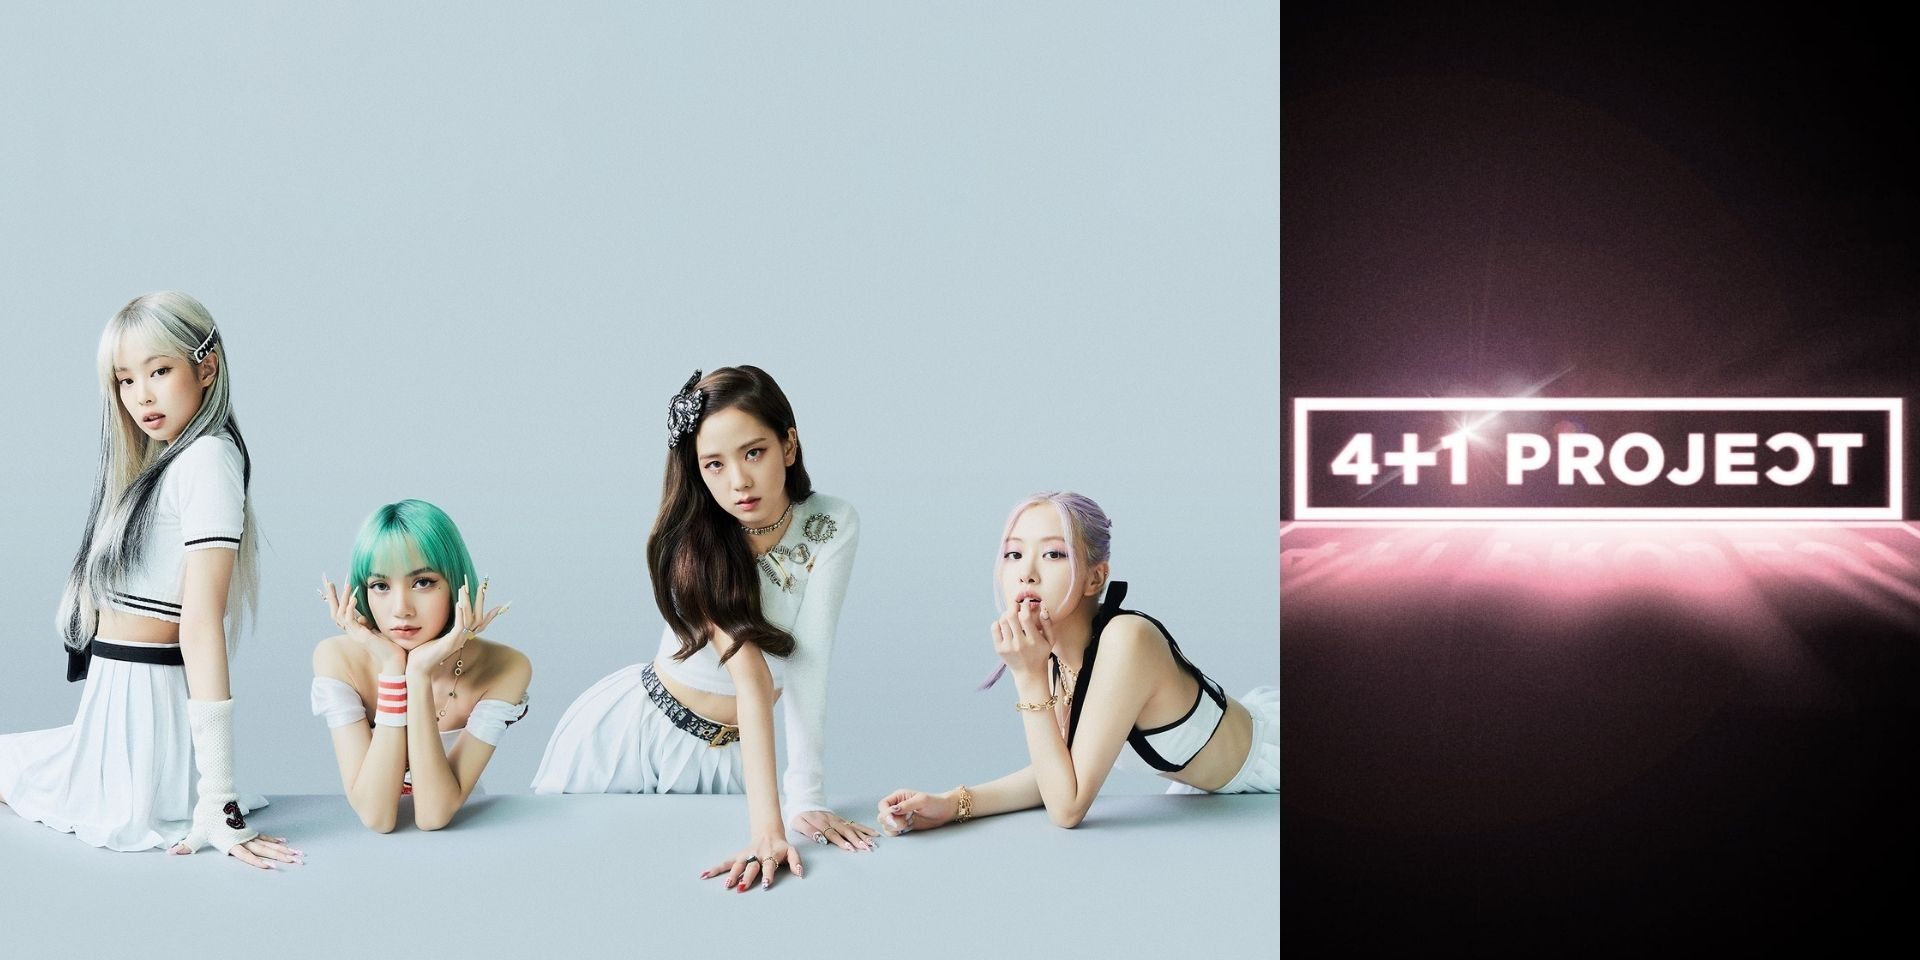 BLACKPINK announce '4+1 PROJECT' for 5th anniversary, including new movie and photobook — here's all you need to know